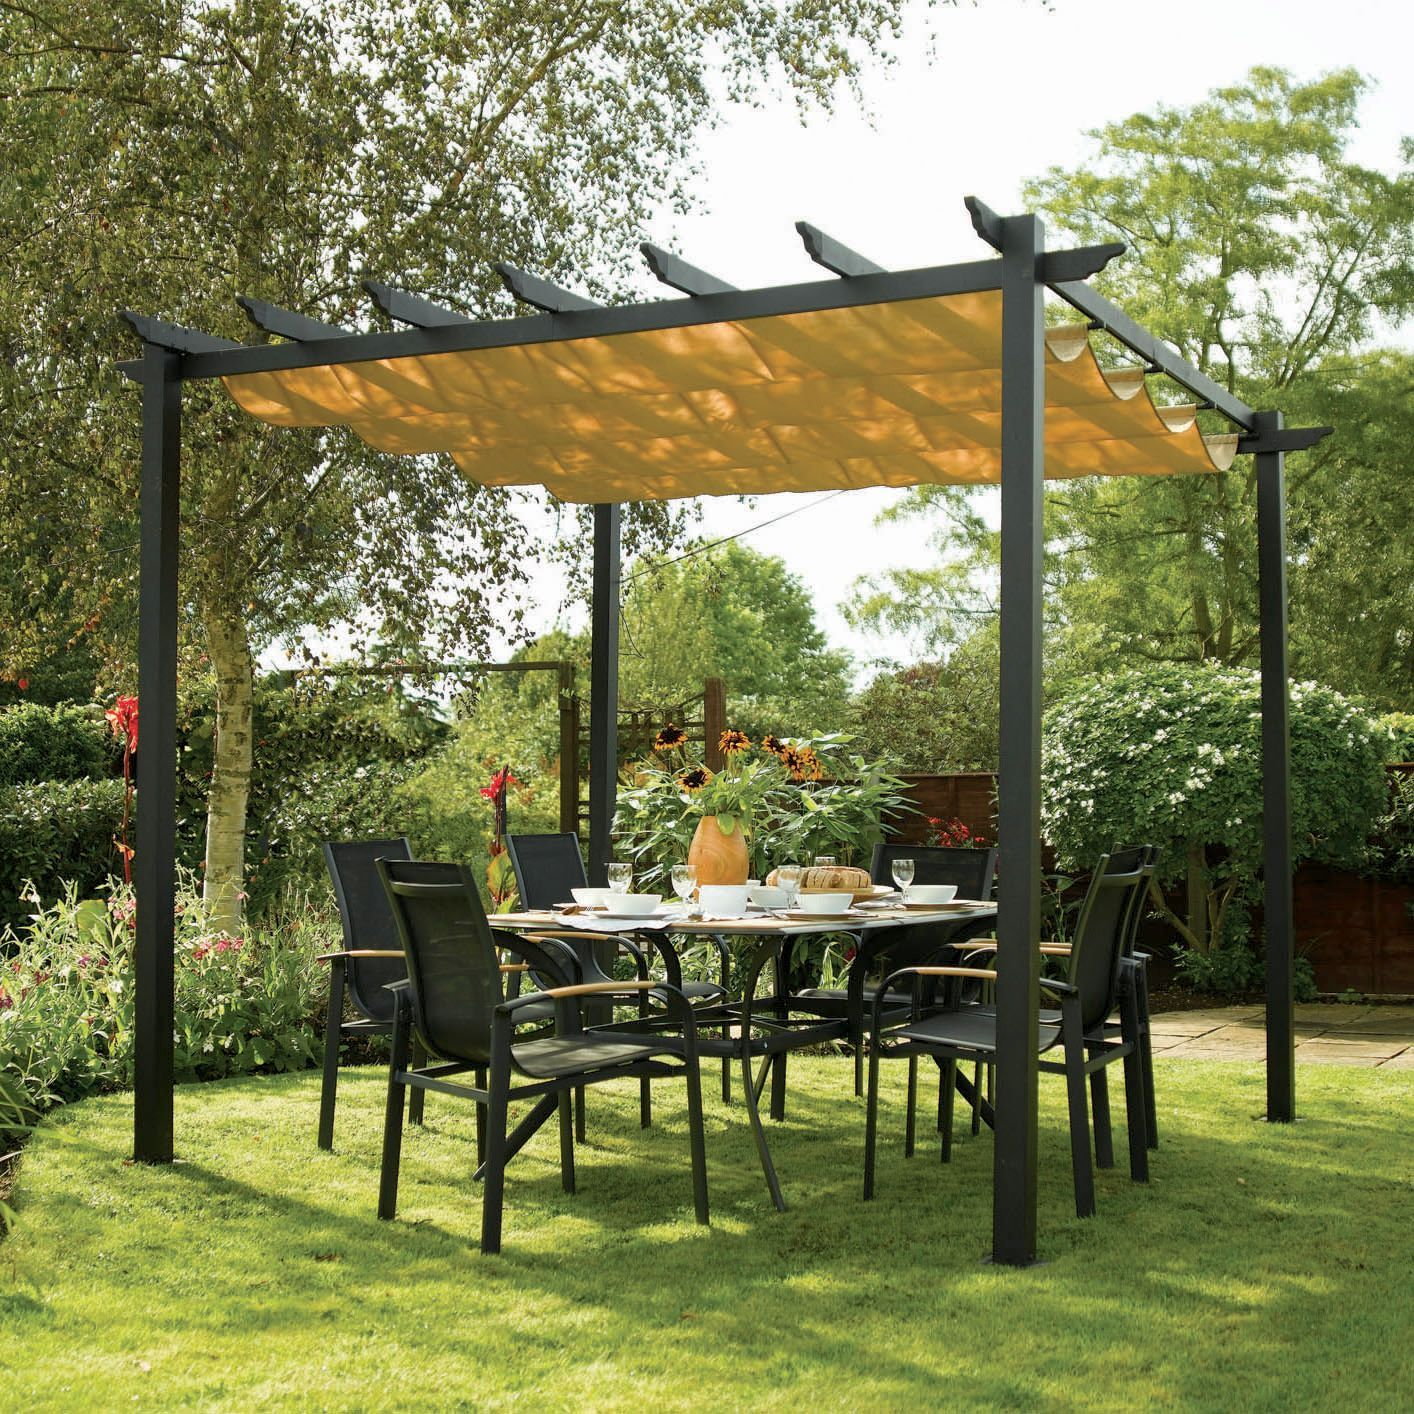 Rowlinson Latina Metal Free Standing Canopy - Assembly Required | Departments | DIY at Bu0026Q & Rowlinson Latina Metal Free Standing Canopy - Assembly Required ...